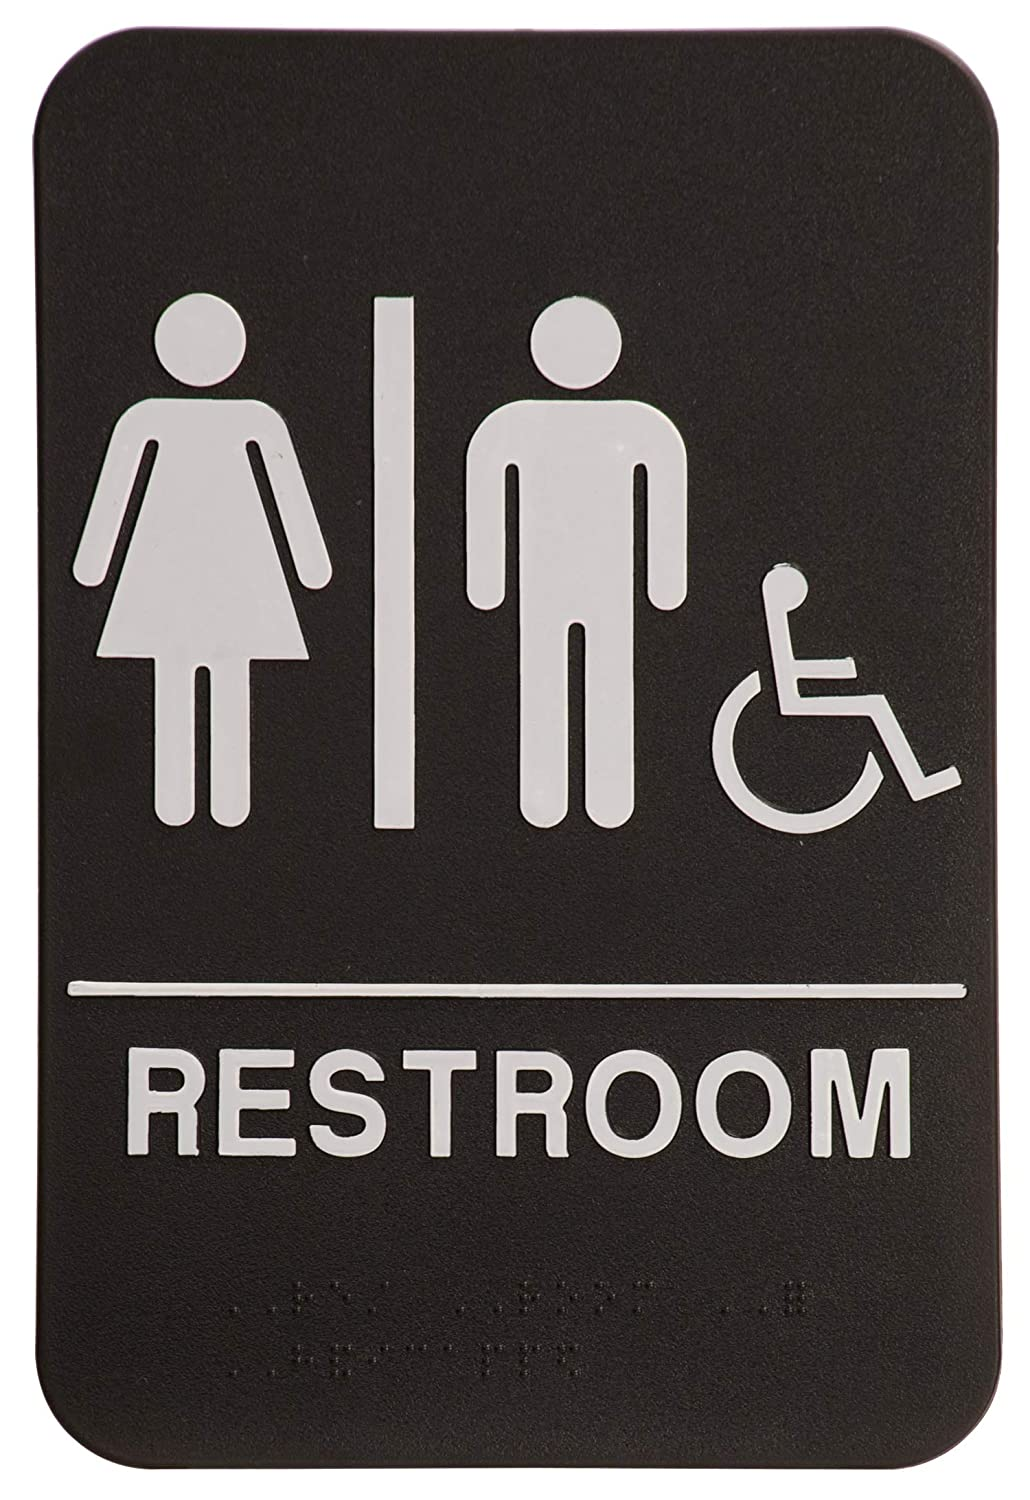 On Top Awards - Unisex Bathroom Sign with Wheelchair Accessible 6